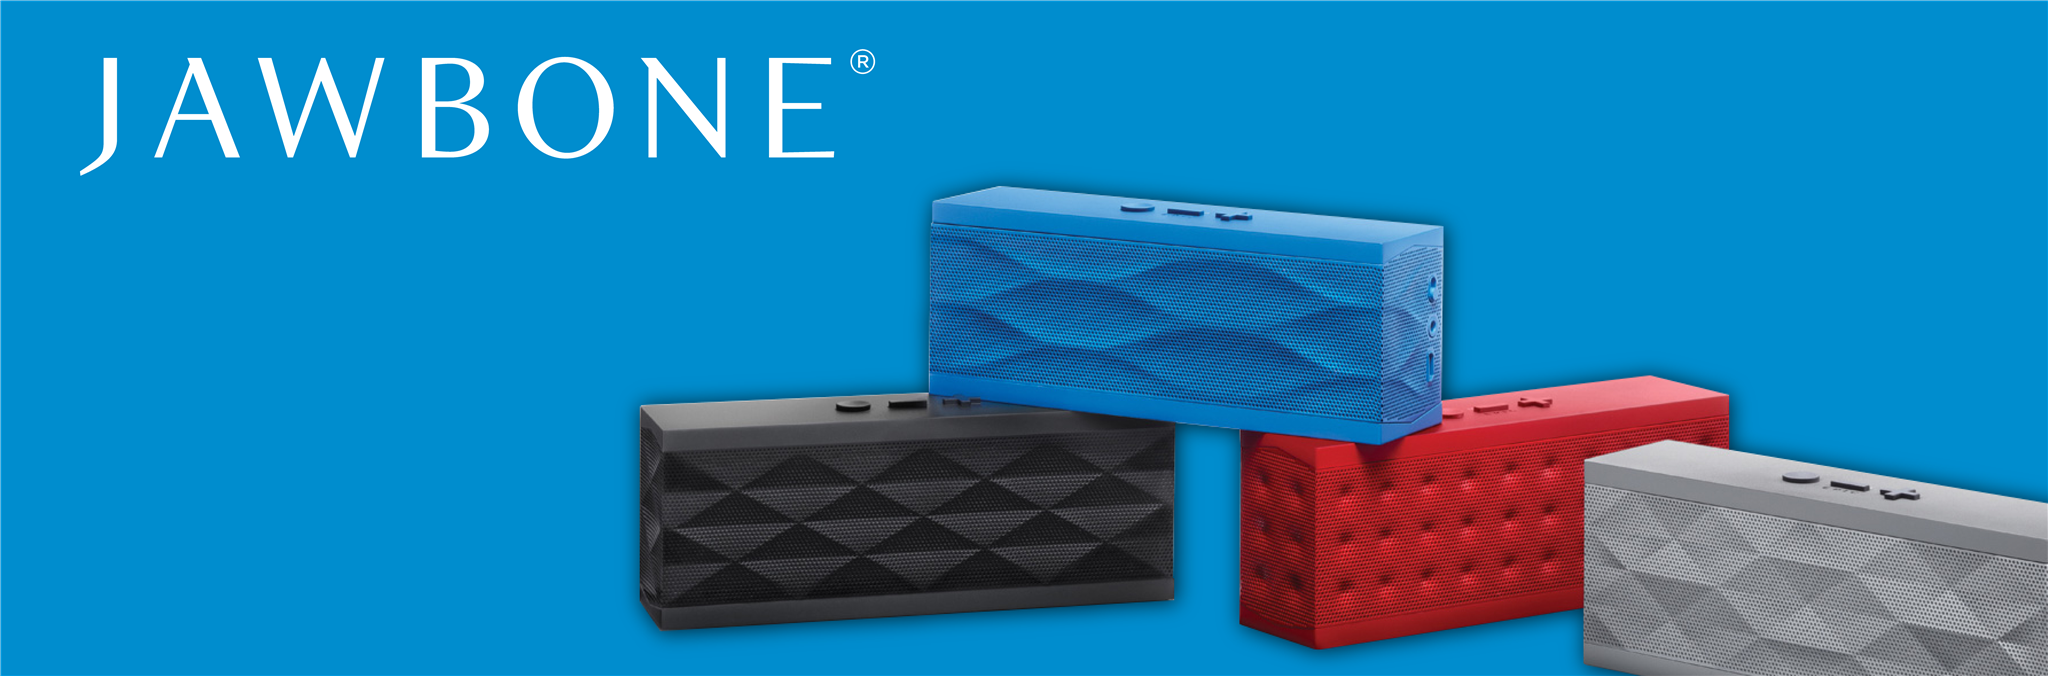 Jawbone has developed products and services for the mobile lifestyle unparalleled in their innovation, ease-of-use, and sophistication of design. The company is the creator of the award-winning and best-selling premium ICON  Bluetooth headset ; the inventor of NoiseAssassin® technology, the world's first and only military-grade noise eliminating technology;  JAMBOX , the first intelligent wireless speaker and speakerphone. A 2010 IDSA Design of the Decade winner, Jawbone is committed to delivering innovative products that improve the mobile lifestyle through ever-changing software and wearability.